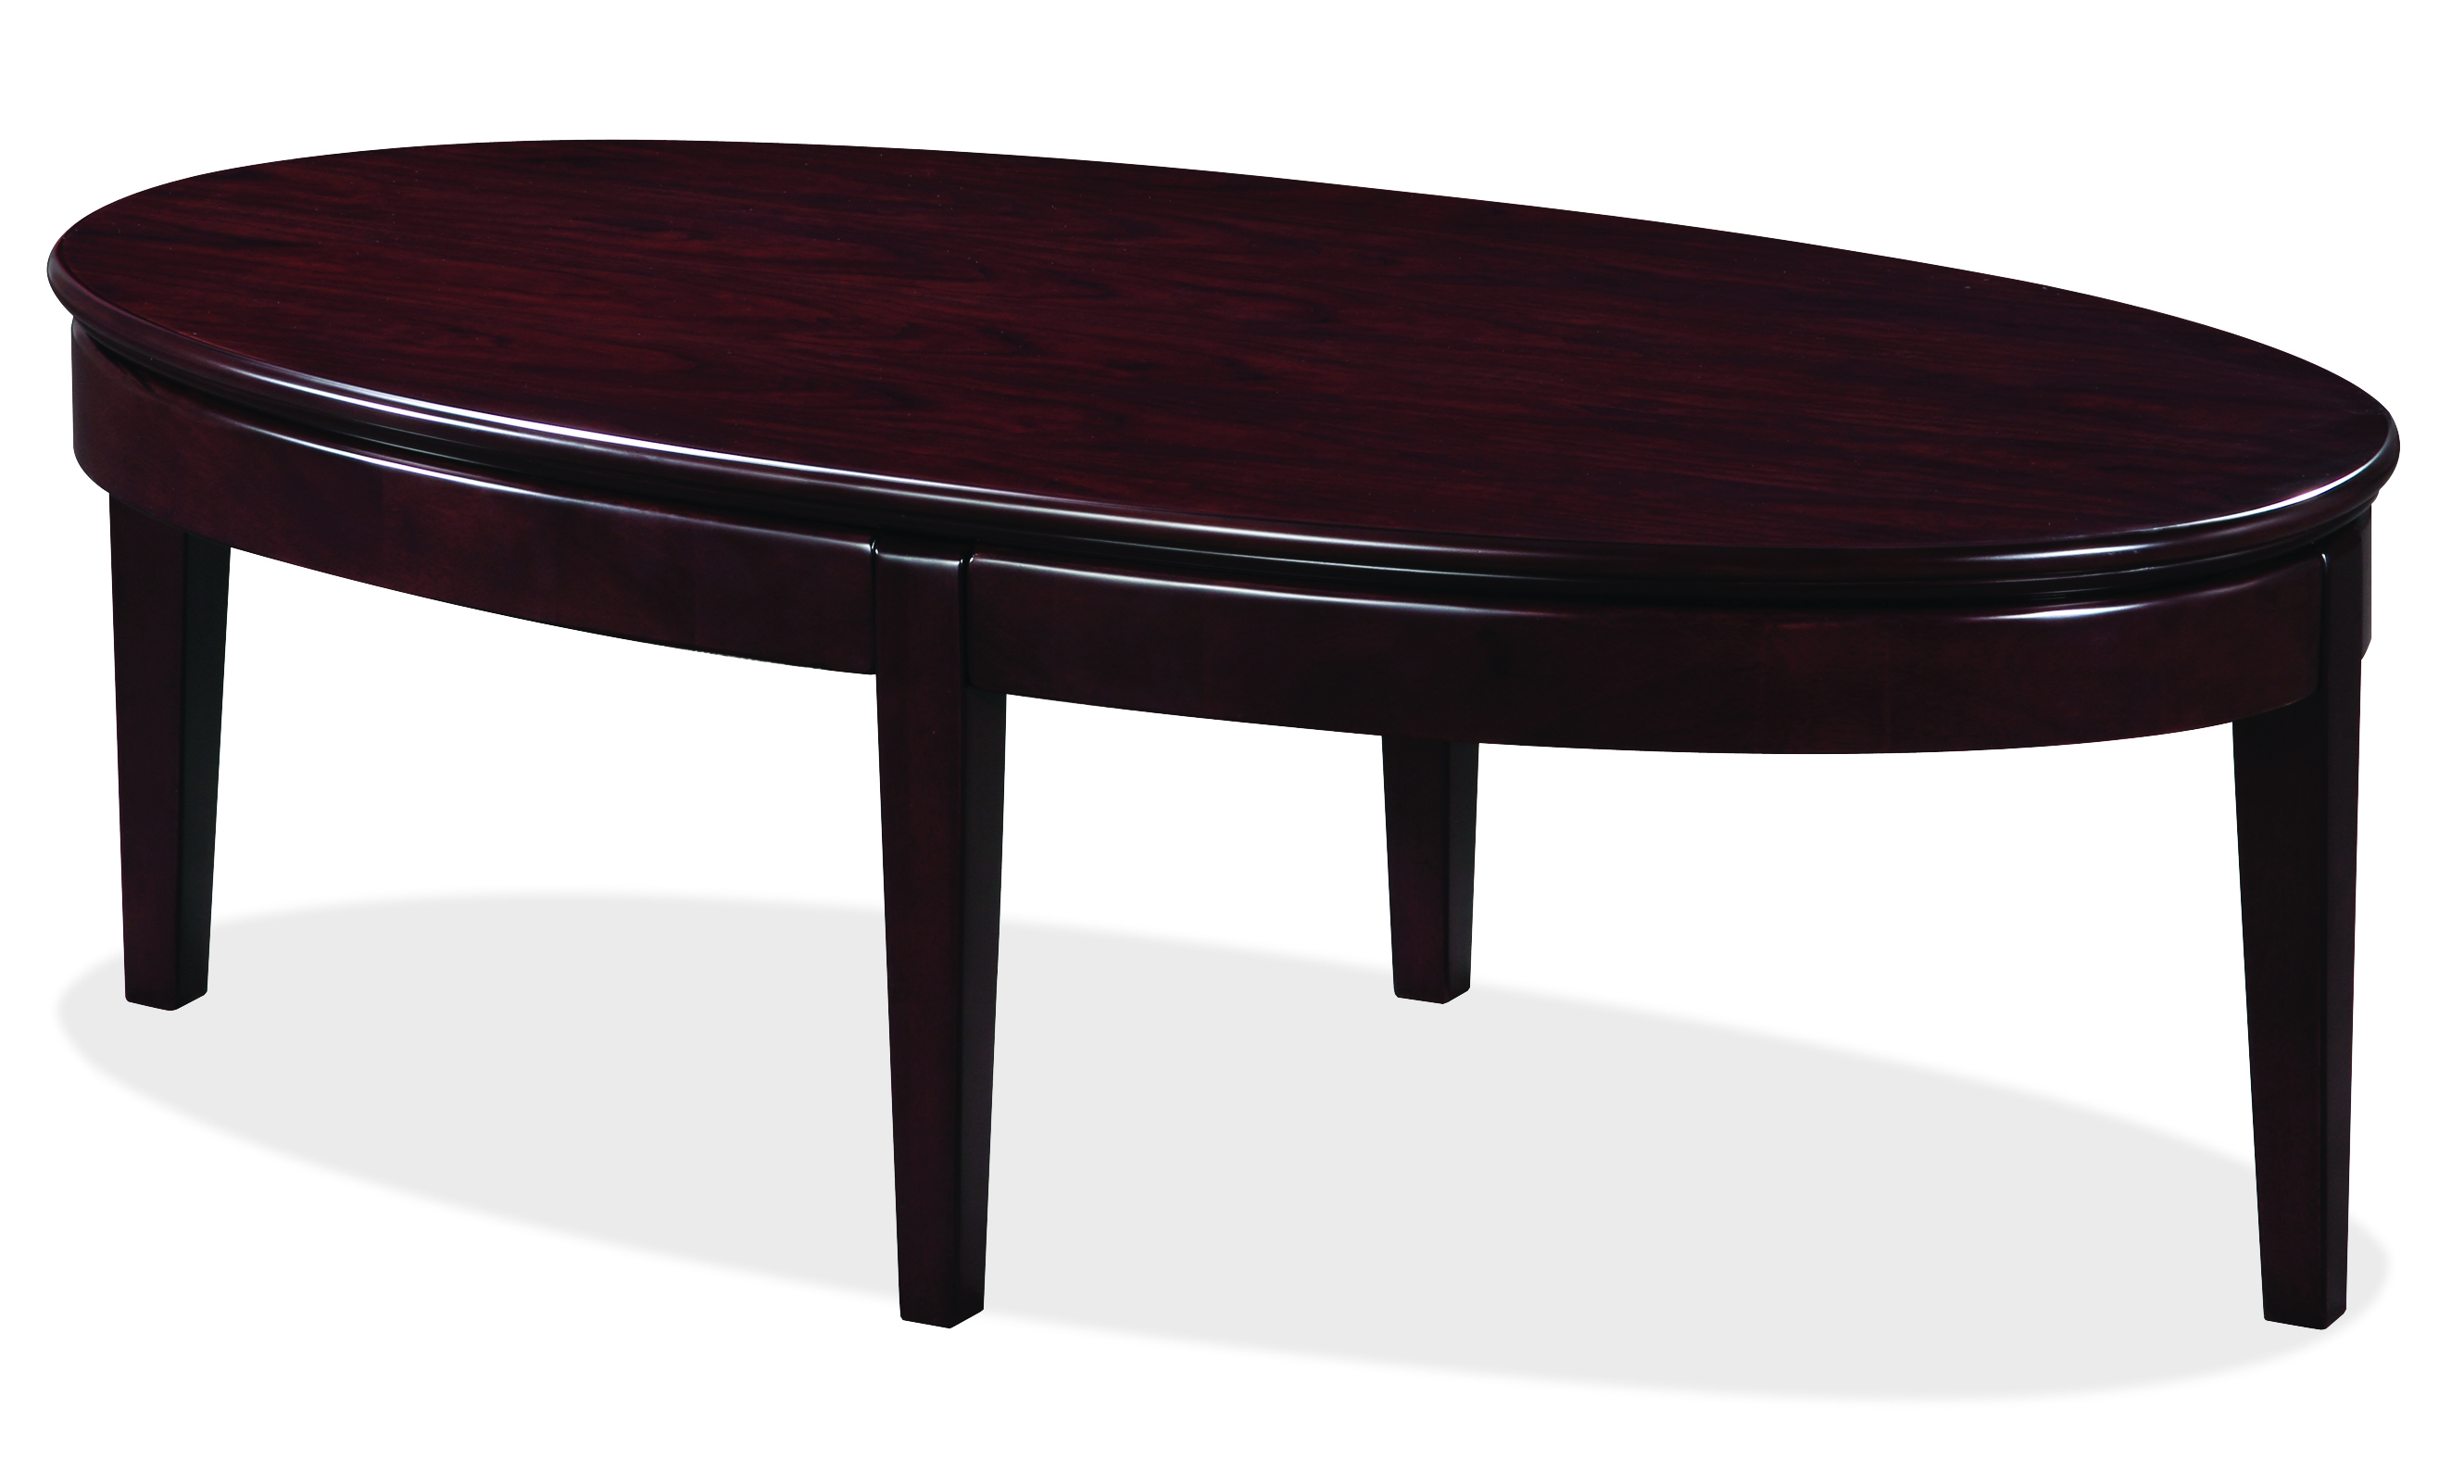 pv veneer series tables by office source vision office interiors. Black Bedroom Furniture Sets. Home Design Ideas